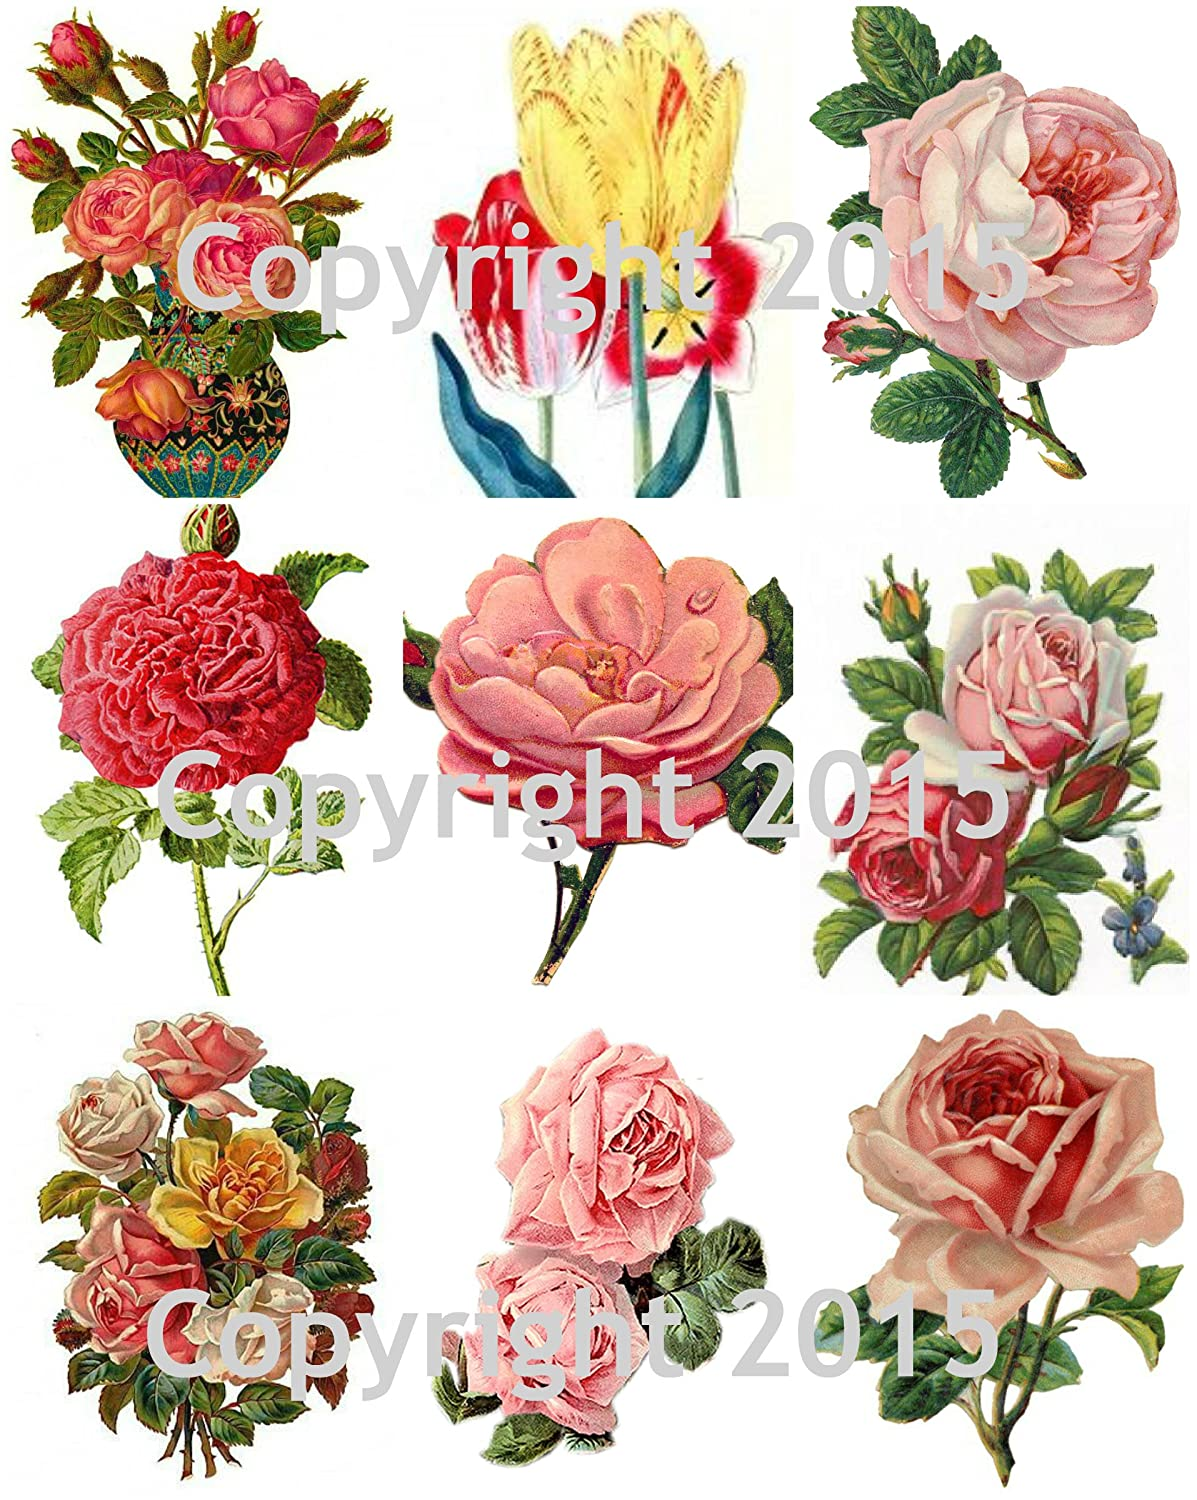 Victorian Flowers Collage Sheet #103 Paper Moon Media